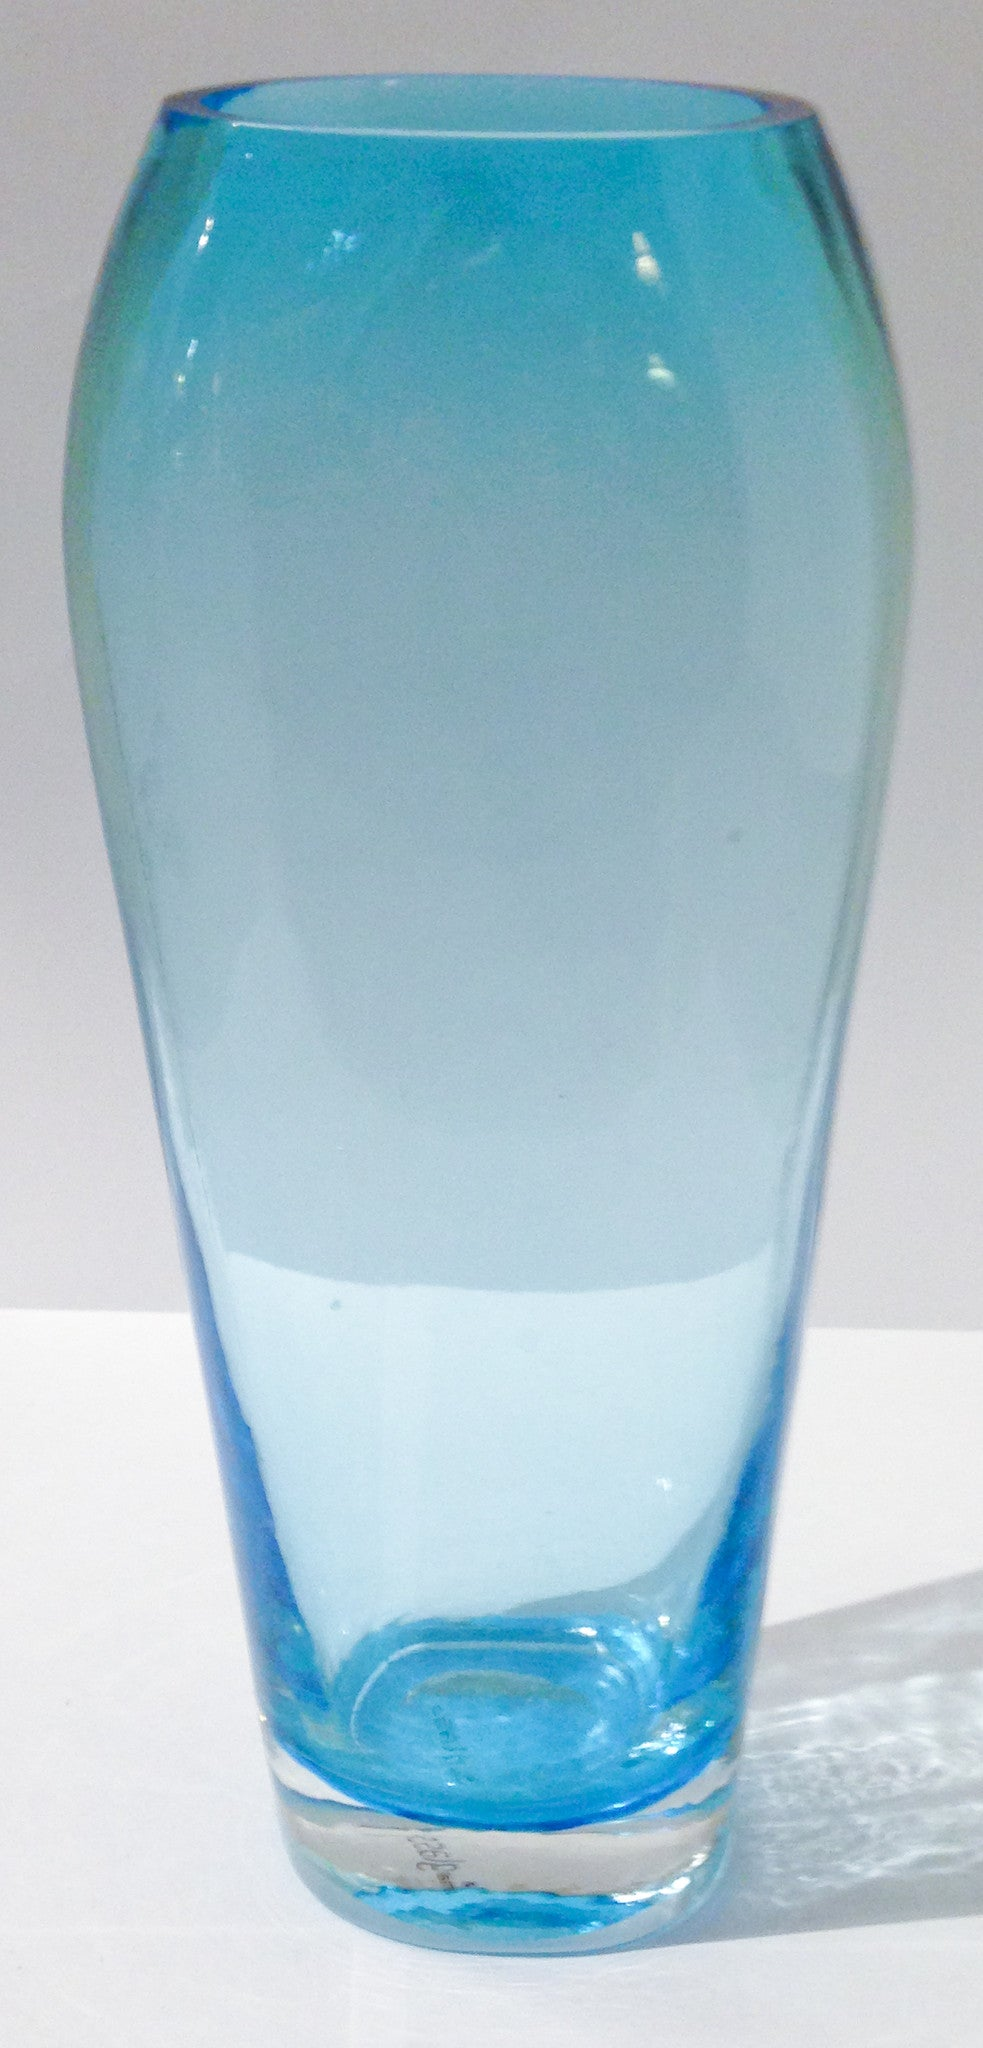 Mid Century Blue Glass Flower Vase - Studio Lane at Reposed NY Vintage Home Decor